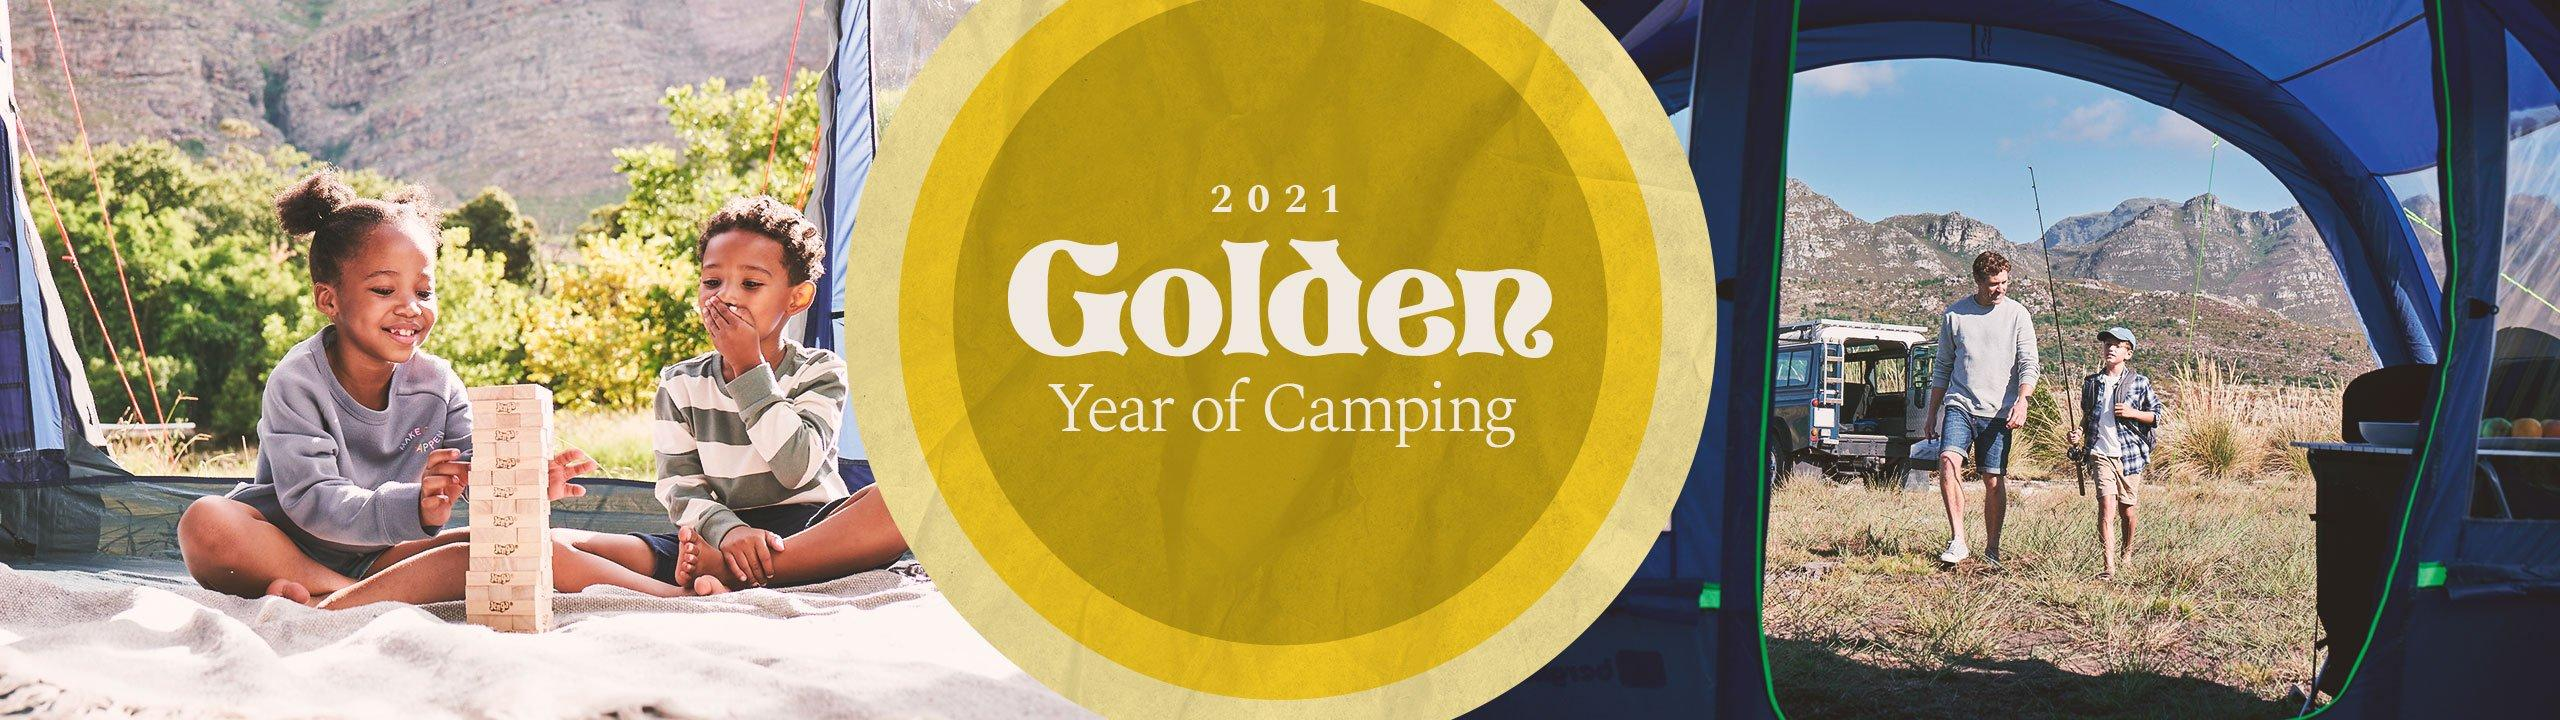 2021 - golden Year of Camping